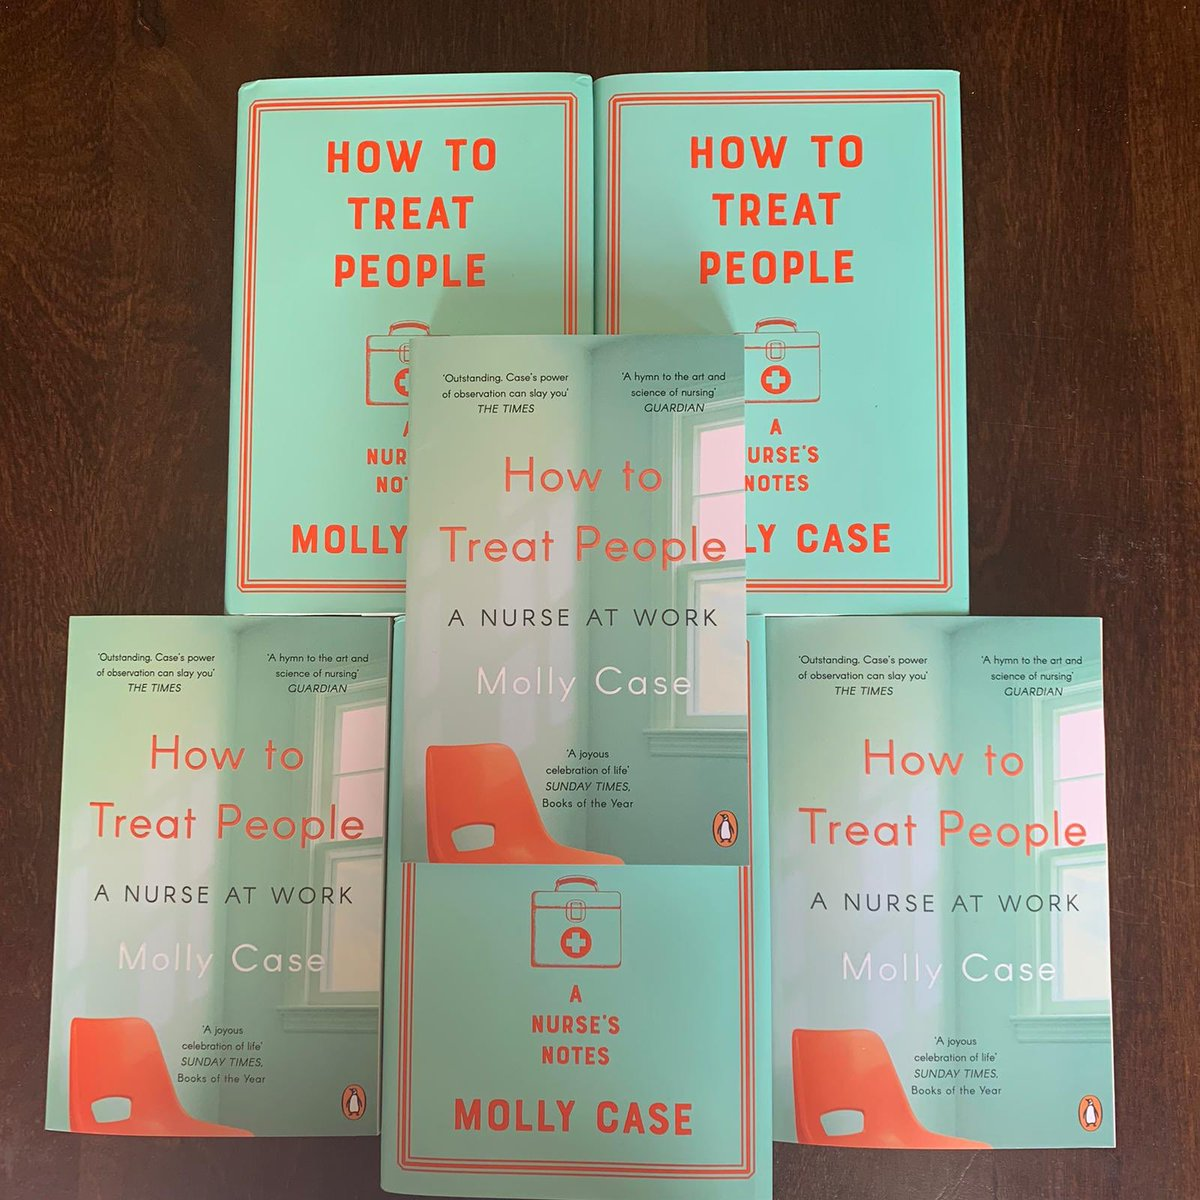 ➡️ GIVEAWAY! 🙌 Happy International Nurse's Day! 💙 To celebrate I'd like to giveaway 6 signed copies of my book HOW TO TREAT PEOPLE 💫 Simply RETWEET & I'll pop them through a randomiser to select 6 this week! 😃 #InternationalNursesDay #IND2020 #Nurses2020 #ThankYouNurses